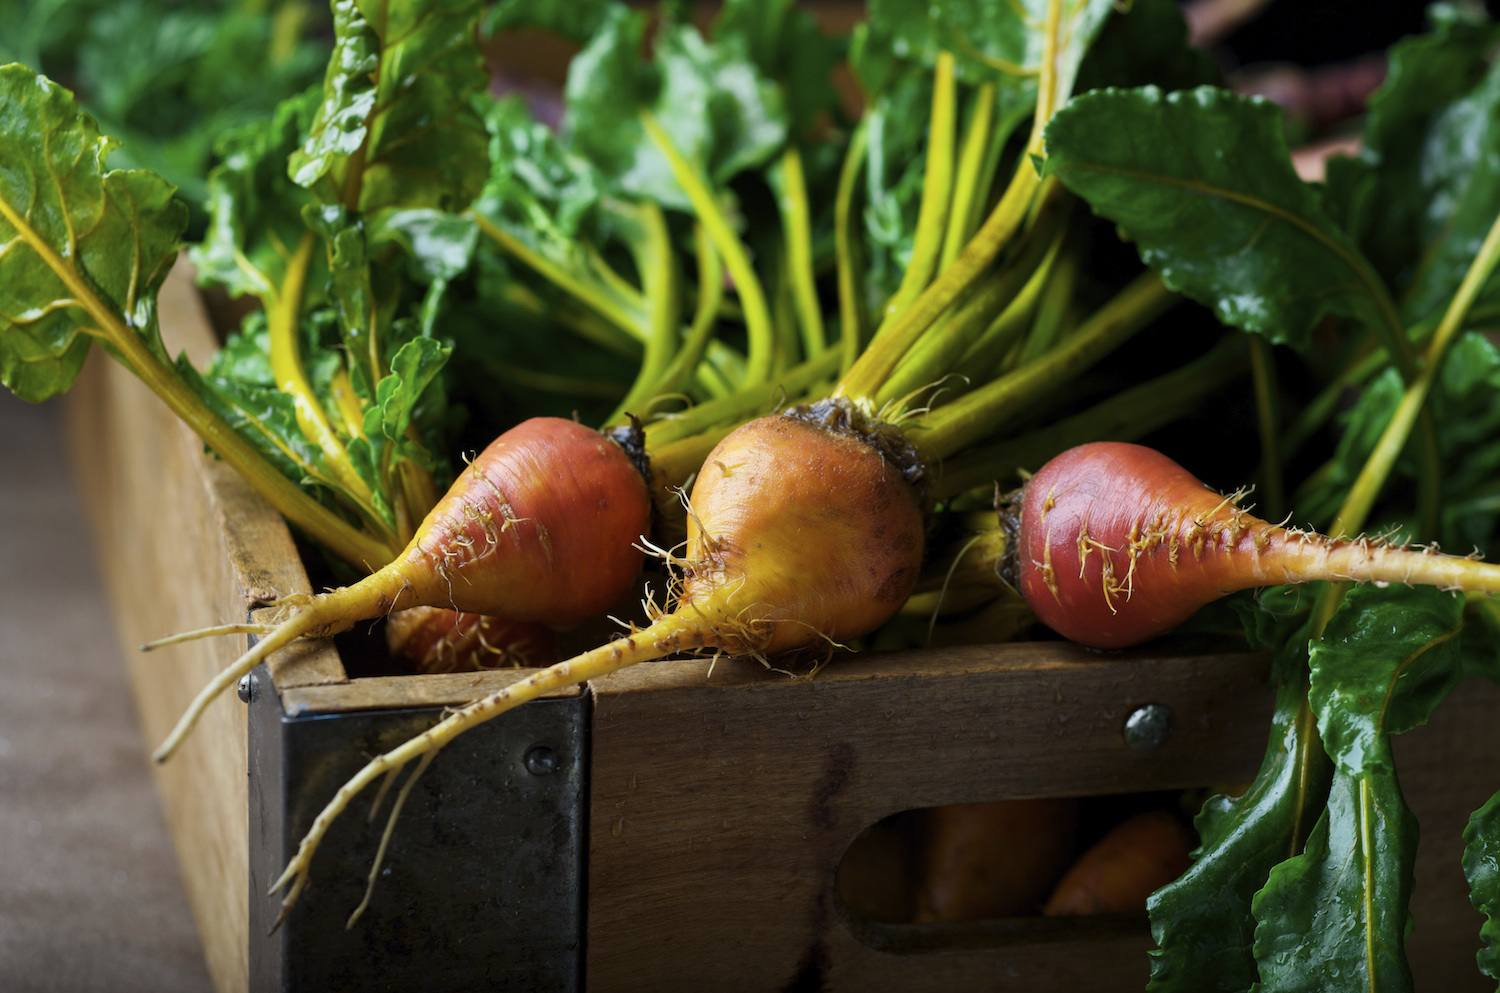 Golden Beetroots in wooden box